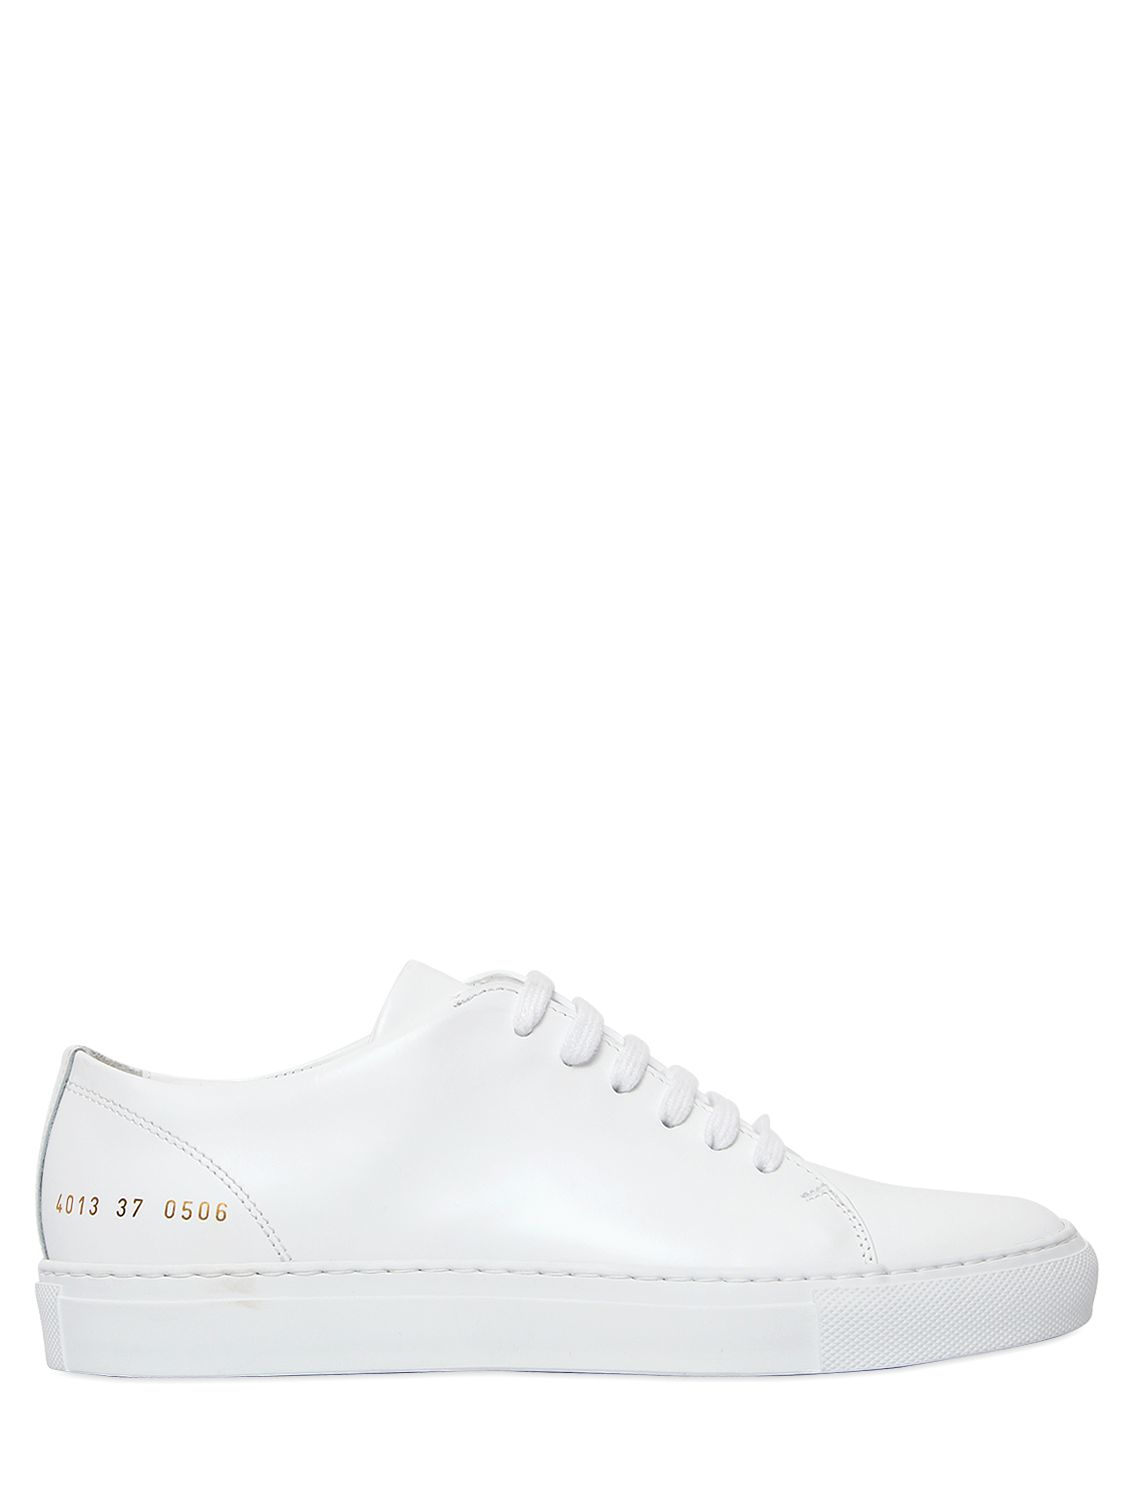 common projects court brushed leather sneakers in white lyst. Black Bedroom Furniture Sets. Home Design Ideas